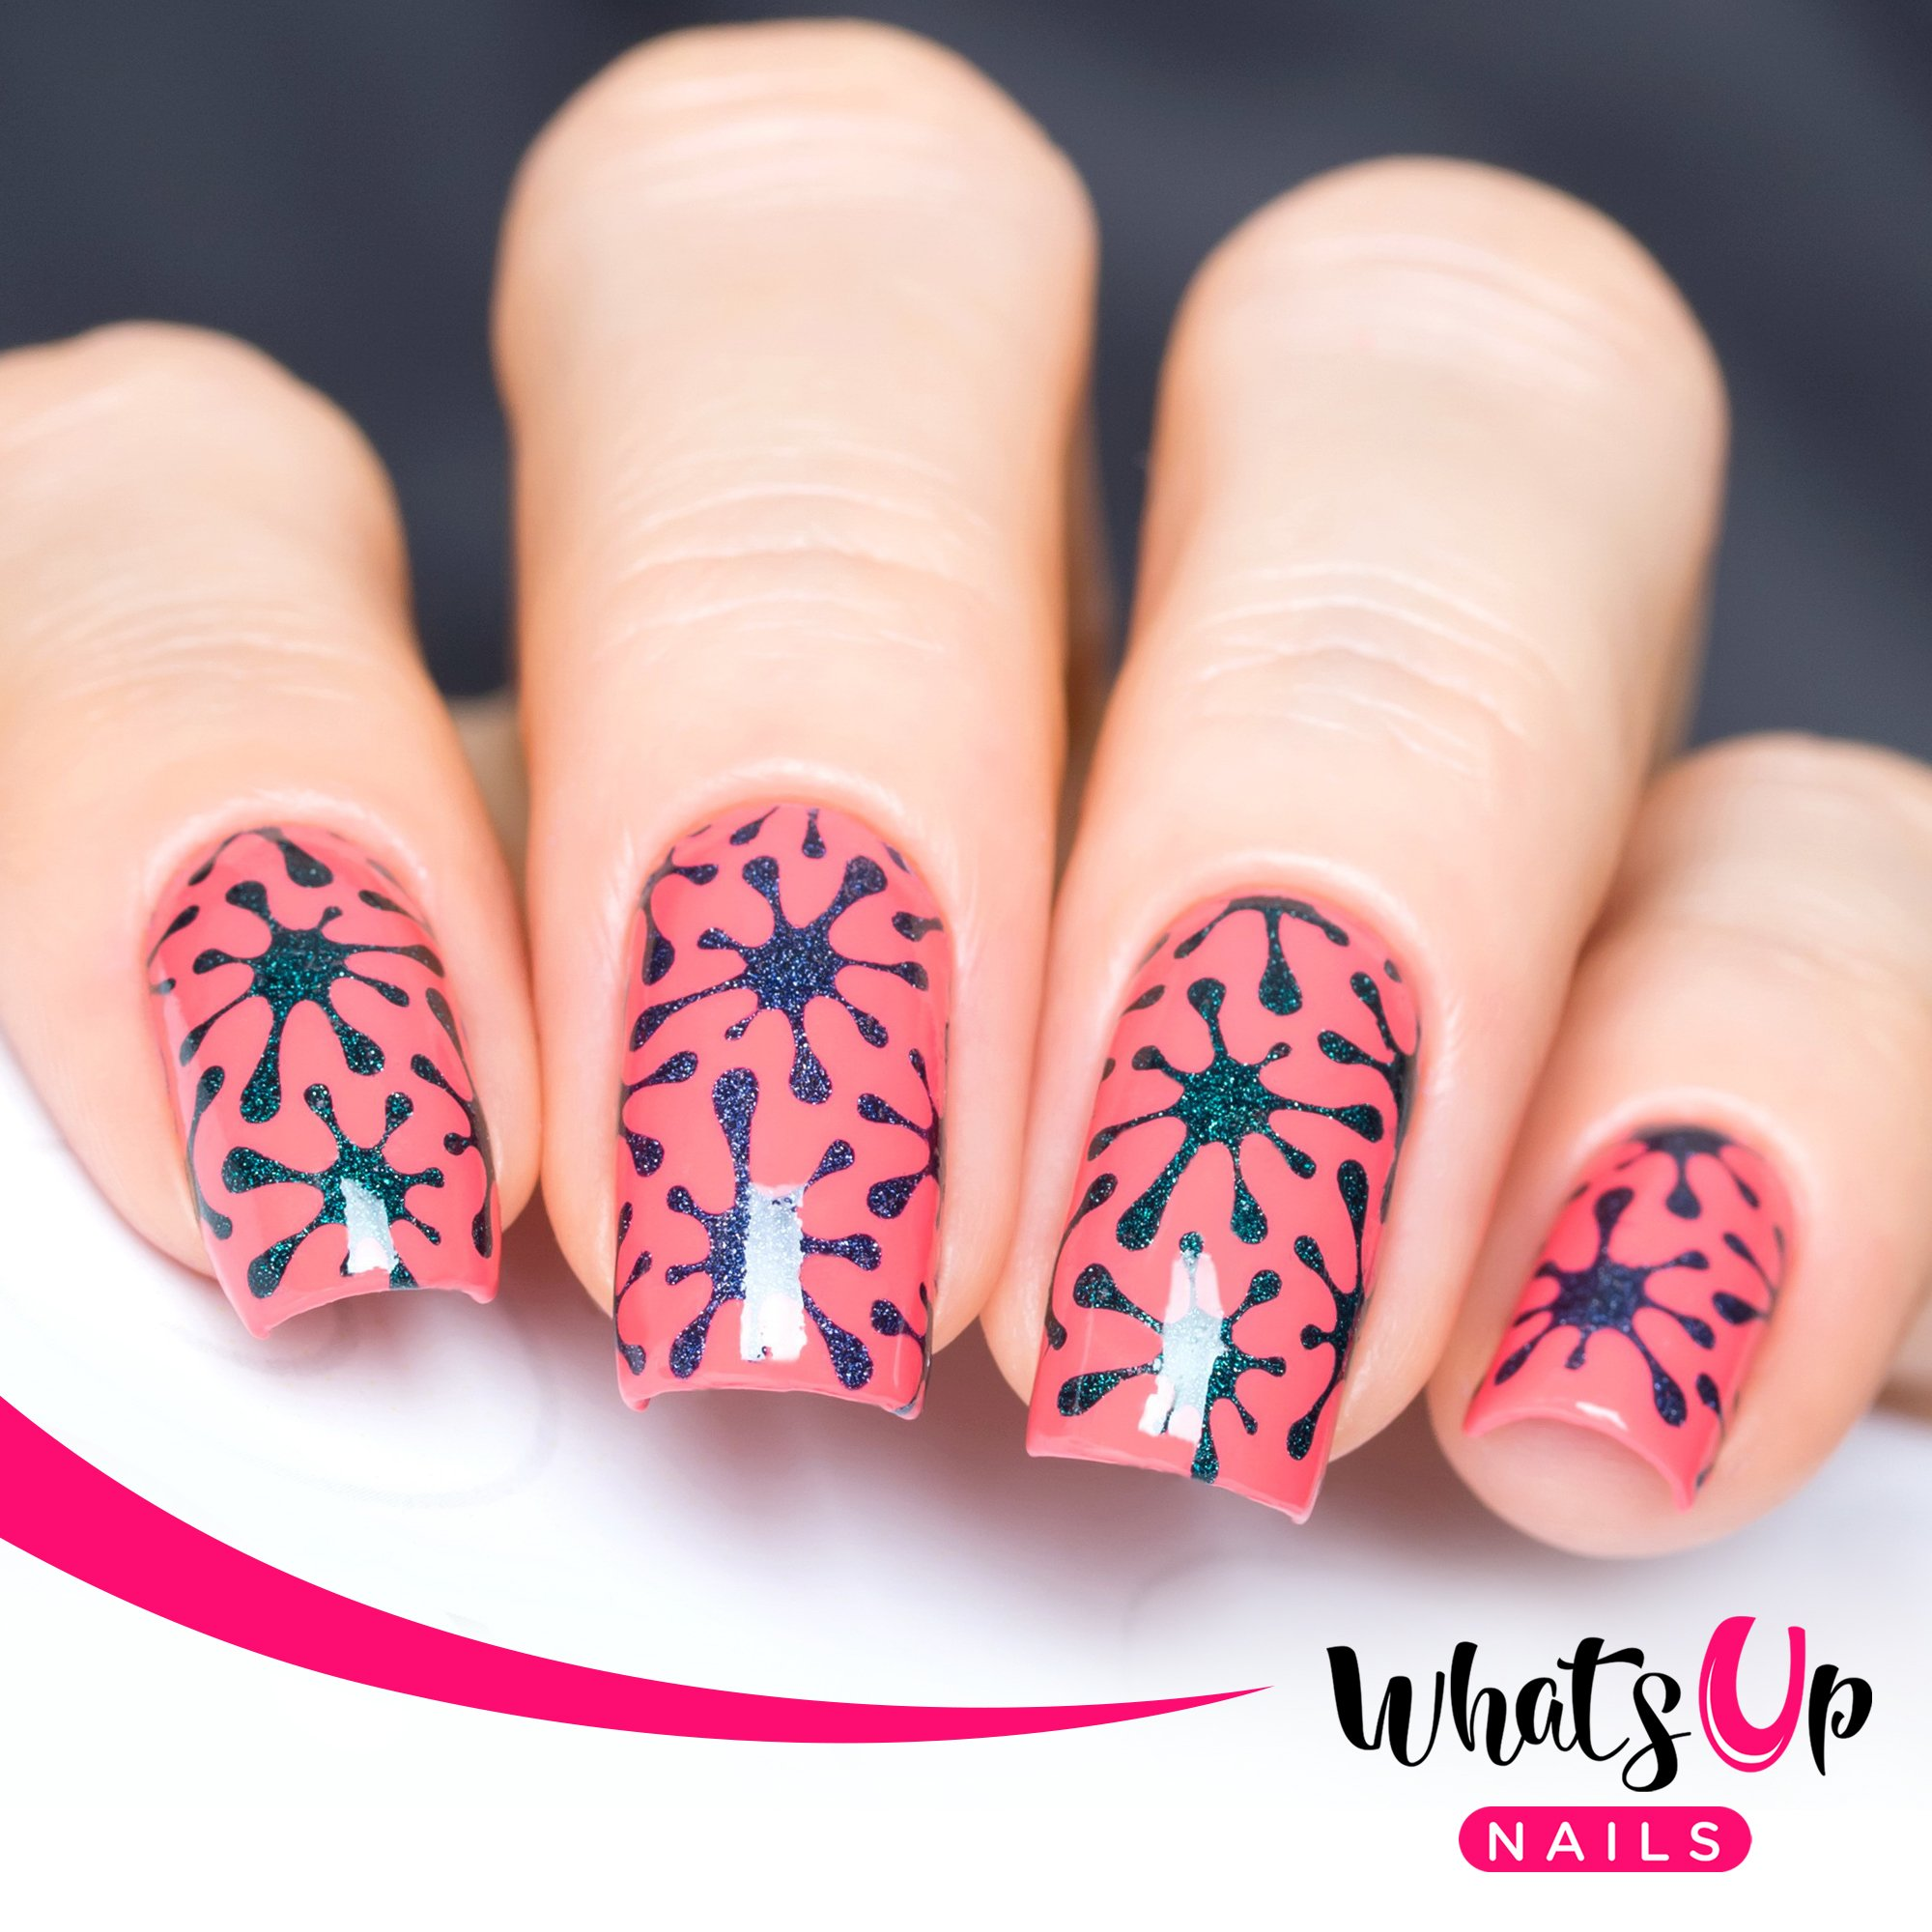 Amazon.com : Whats Up Nails - Dripping Nail Stencils Stickers Vinyls ...